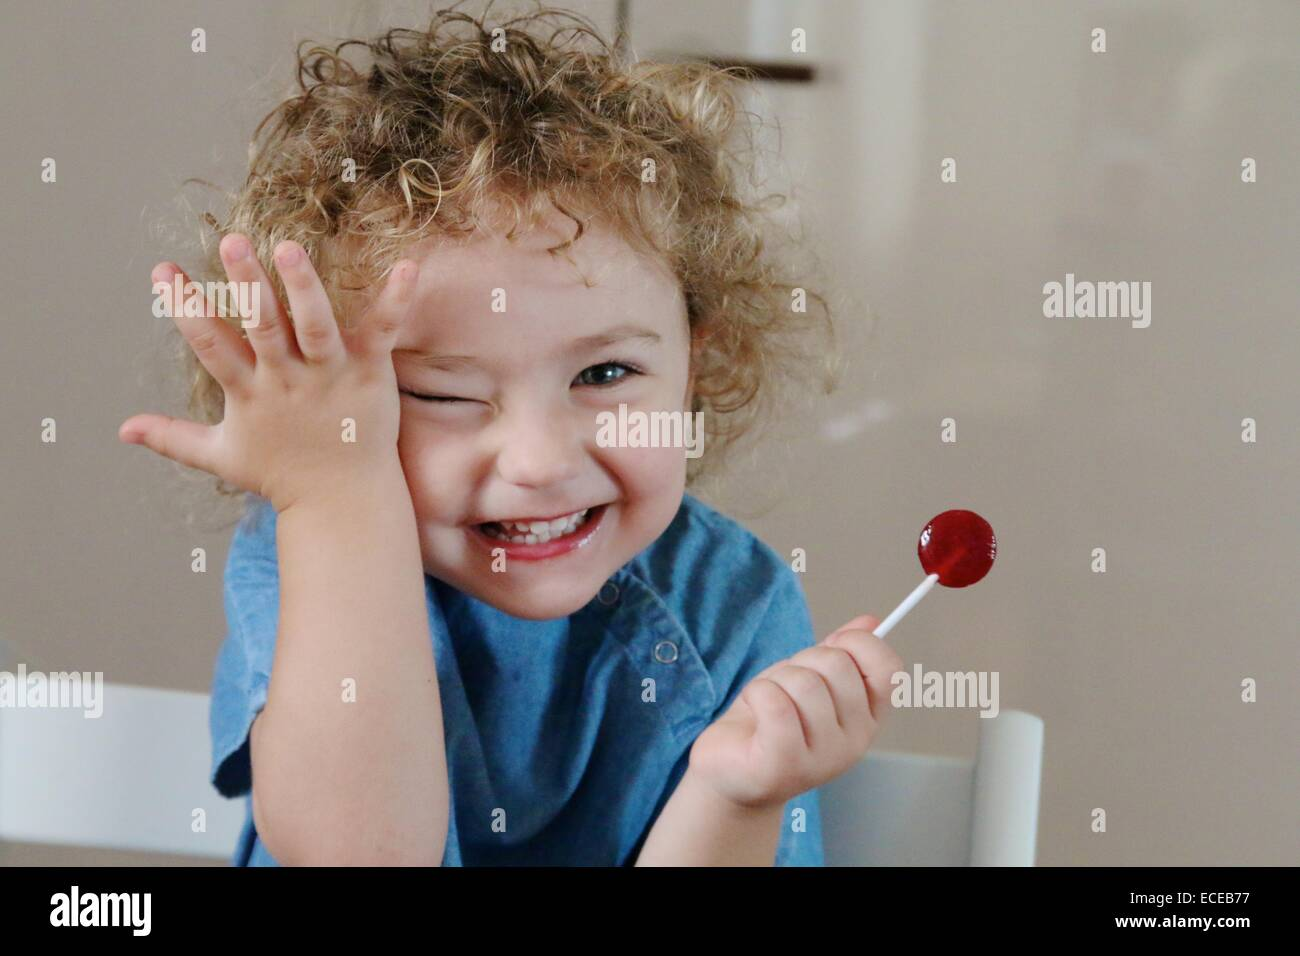 Girl (2-3) with lollypop smiling - Stock Image